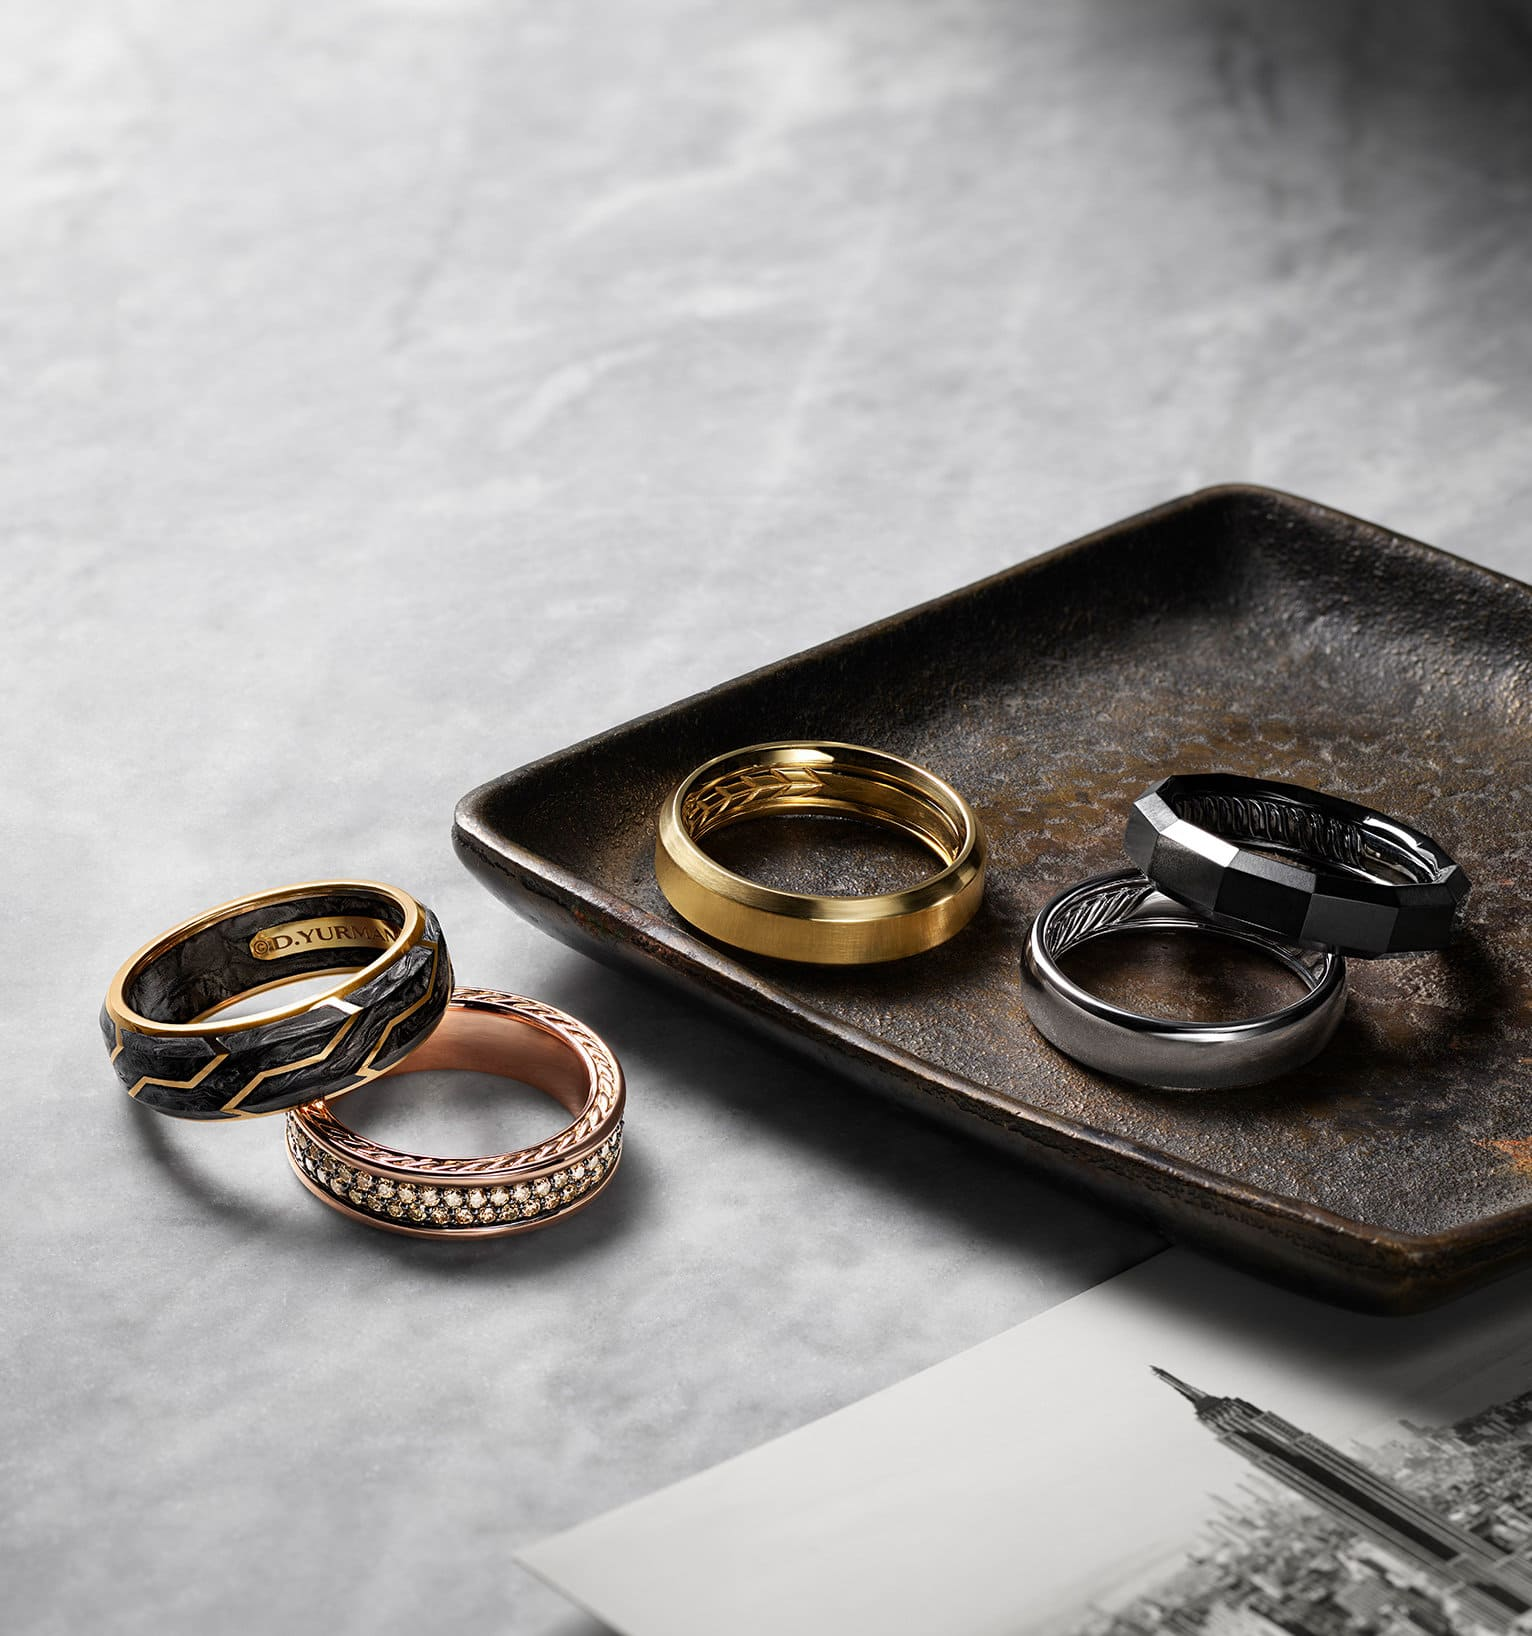 A color photo shows two David Yurman men's band rings scattered on a grey marble surface next to a scratched, rusted metal dish holding three David Yurman men's band rings. The jewelry is crafted from 18K yellow gold with or without forged carbon, 18K rose gold with cognac diamonds, 18K white gold or black titanium.